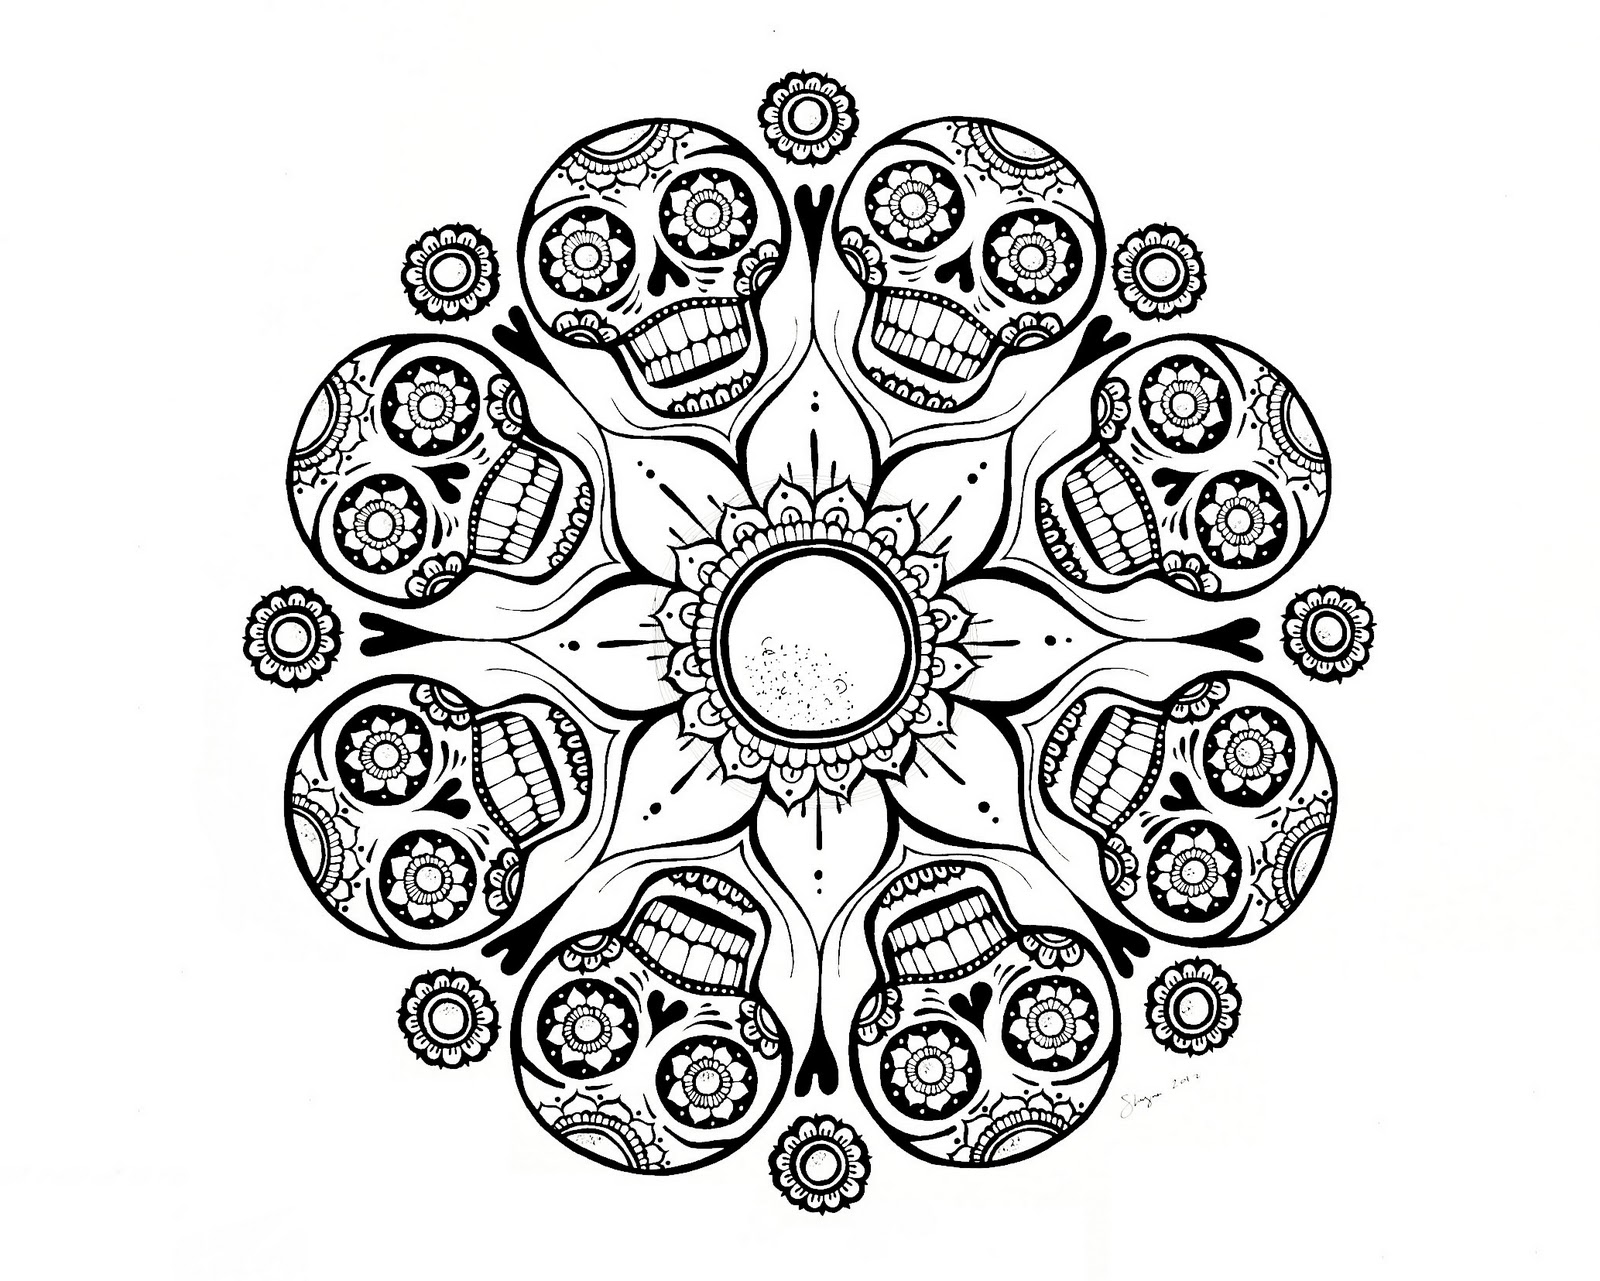 Skull Mandala Coloring Pages Am Selling Pdf Downloads In My Etsy Shop For